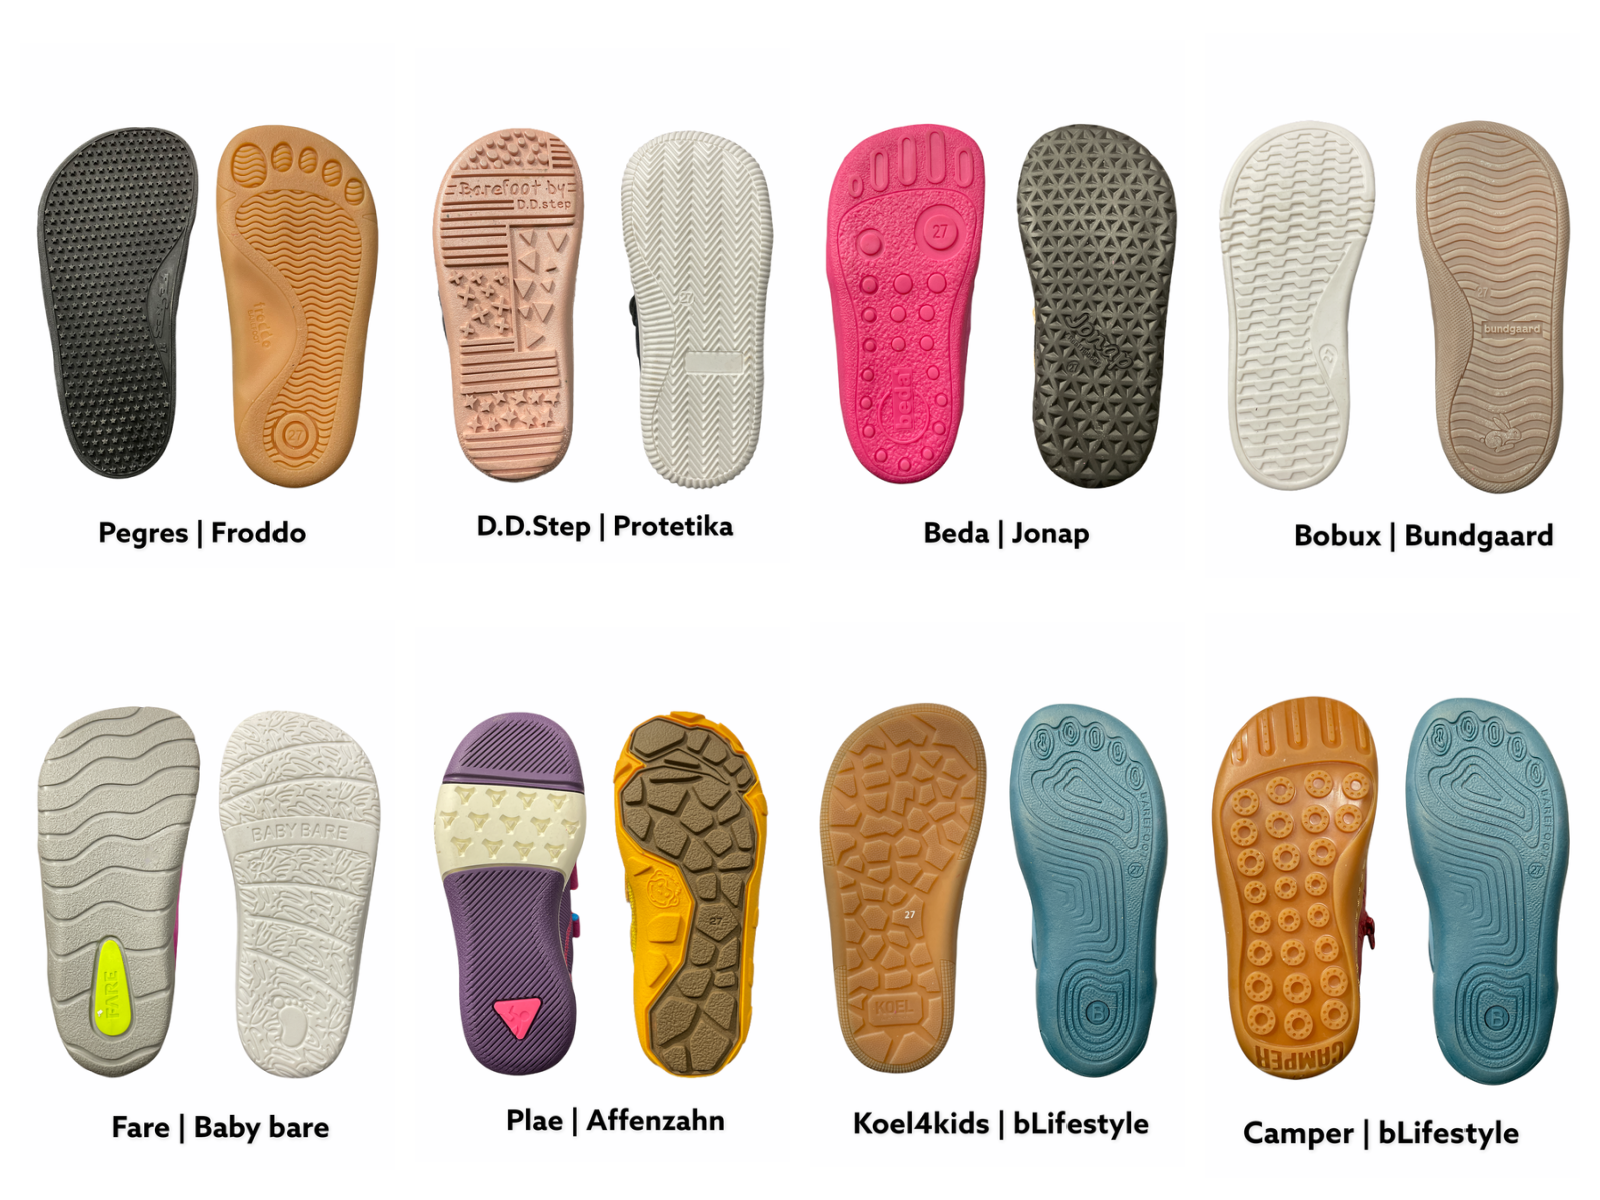 High top year round barefoot shoes review 2021